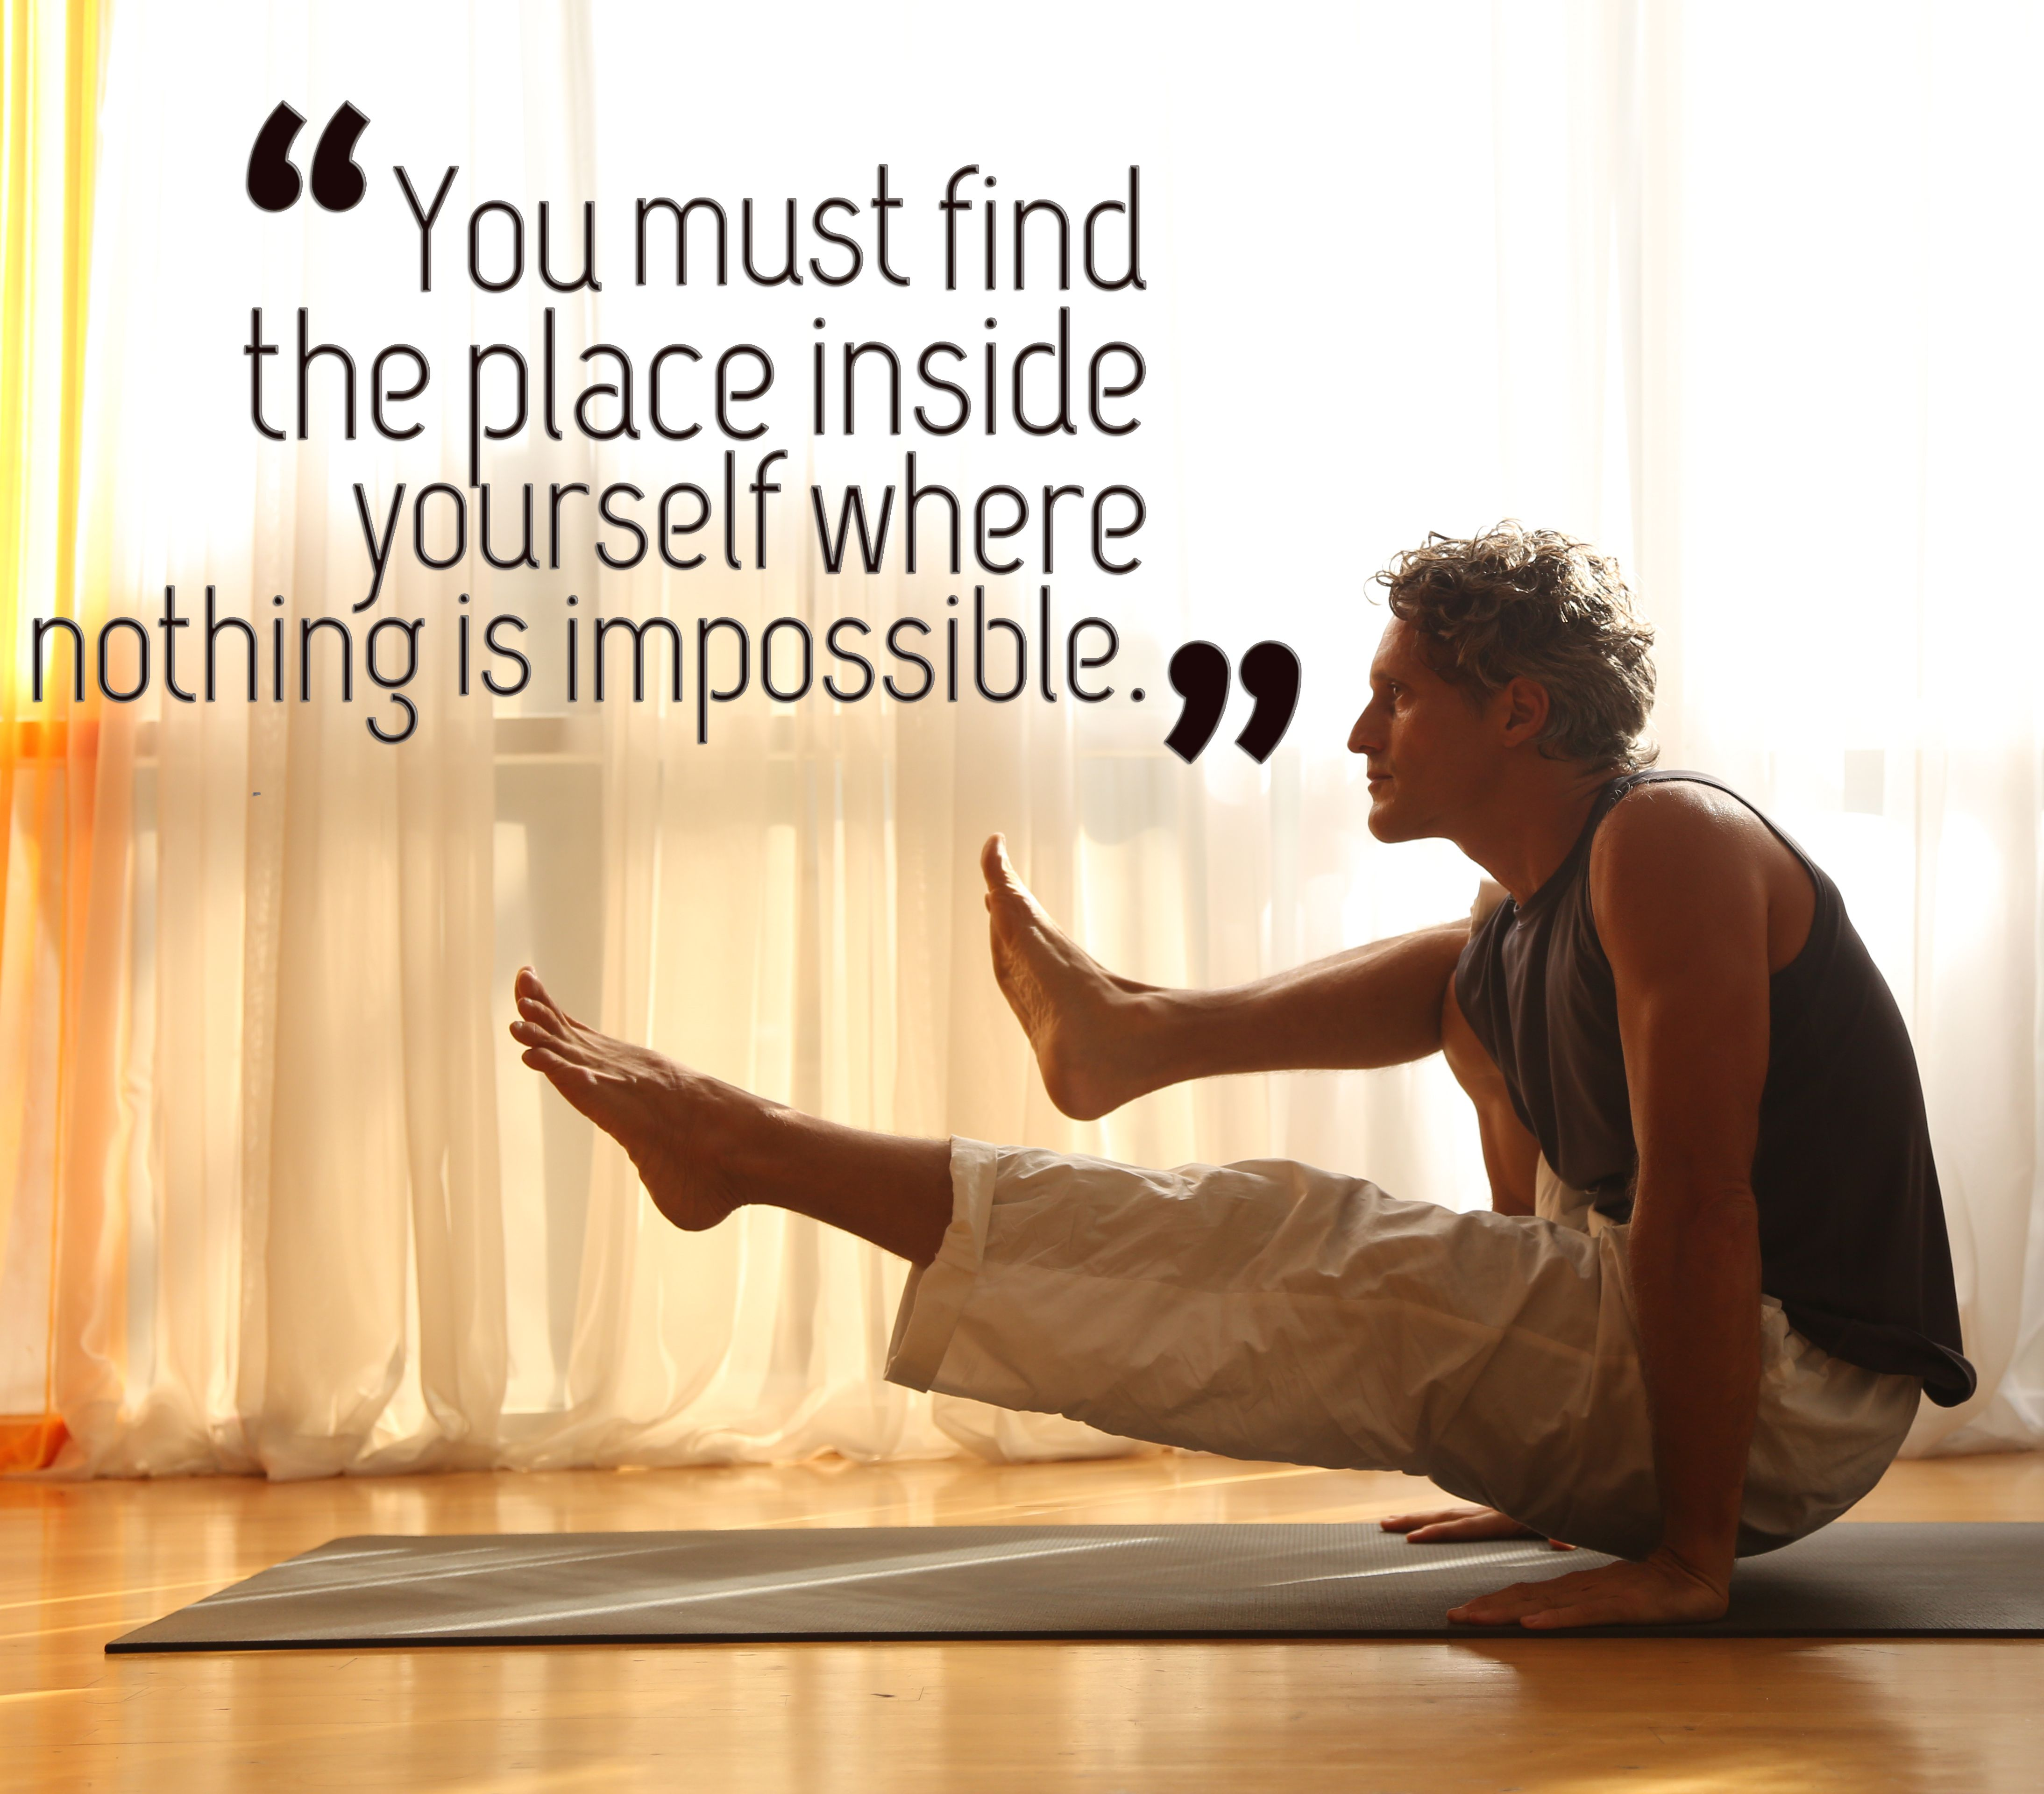 You must find the place inside yourself, where nothing is impossible <3 <3 #yogajournal #yogainspiration #MorningQuotes #yoga